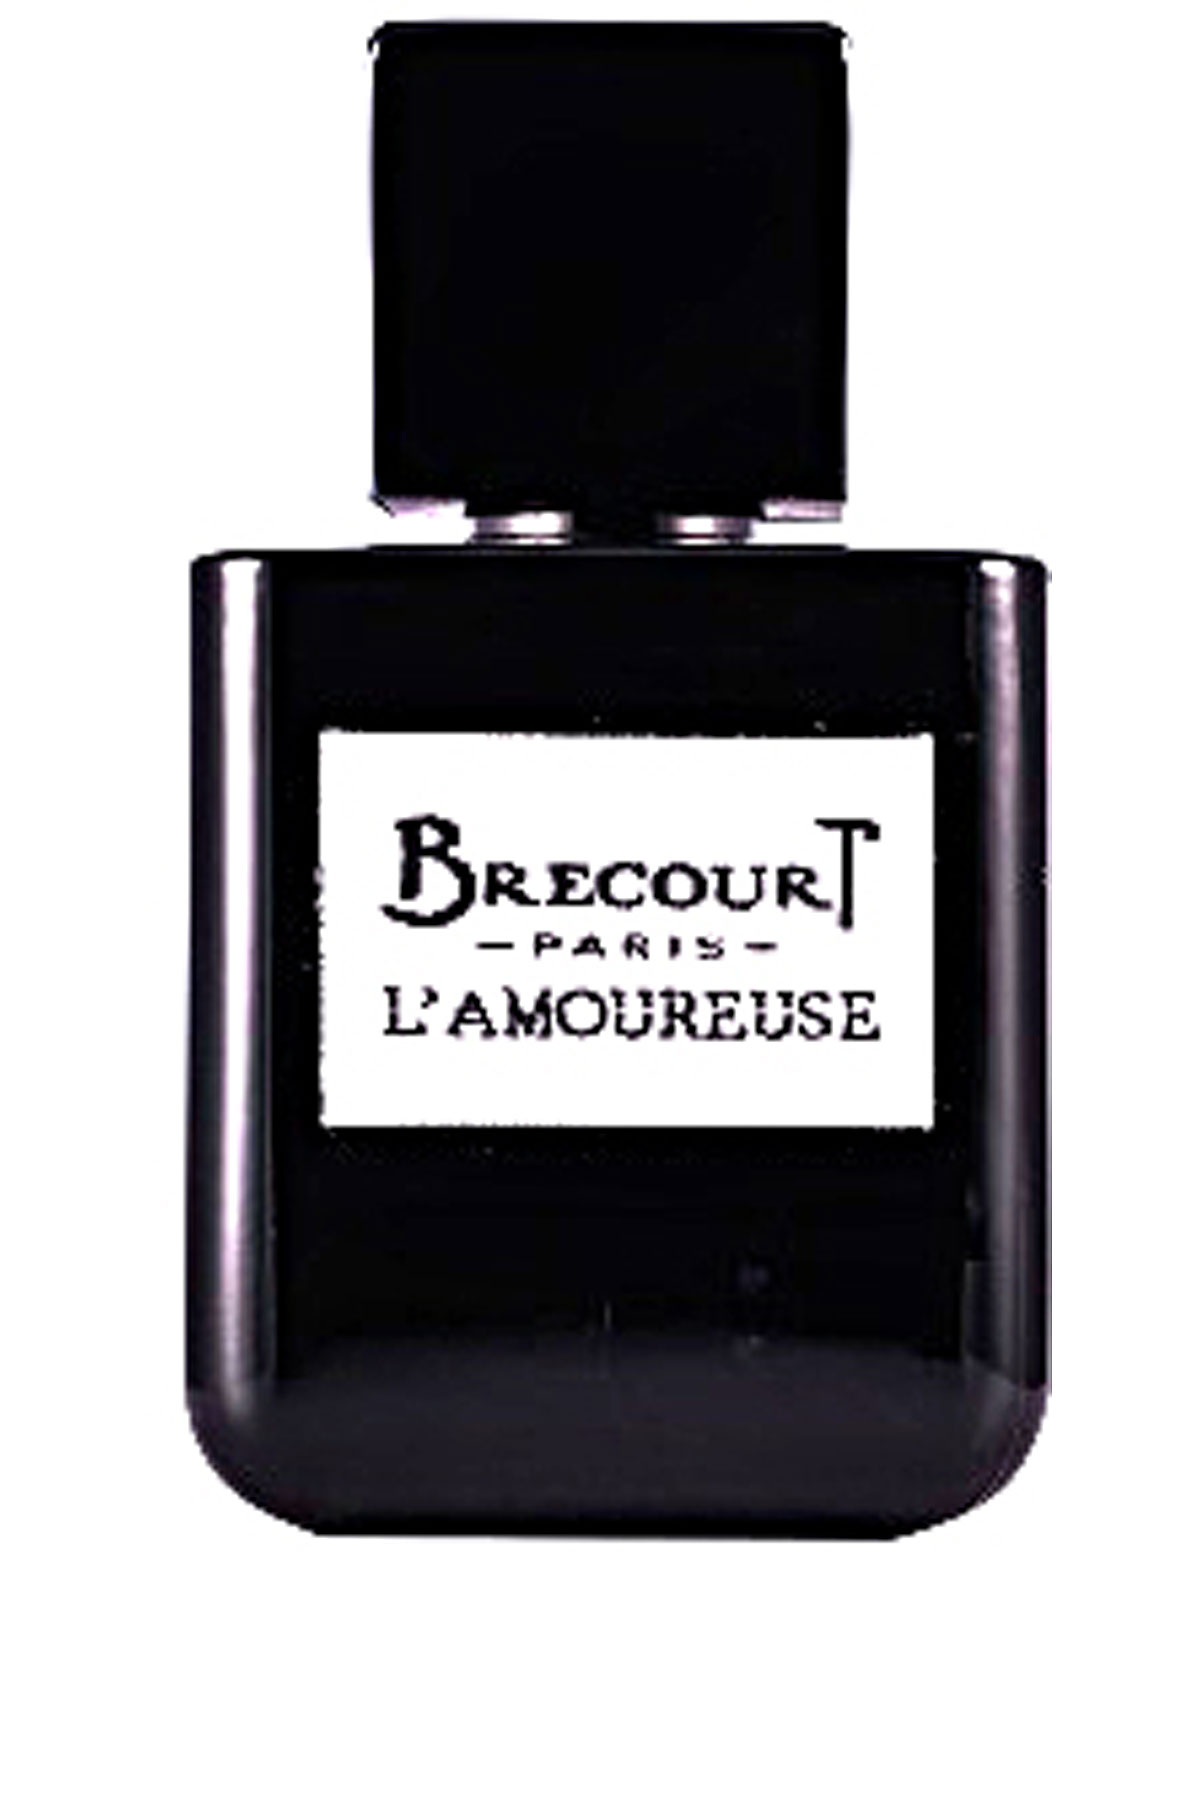 Brecourt Fragrances for Women, L Amoureuse - Eau De Parfum - 50 Ml, 2019, 50 ml